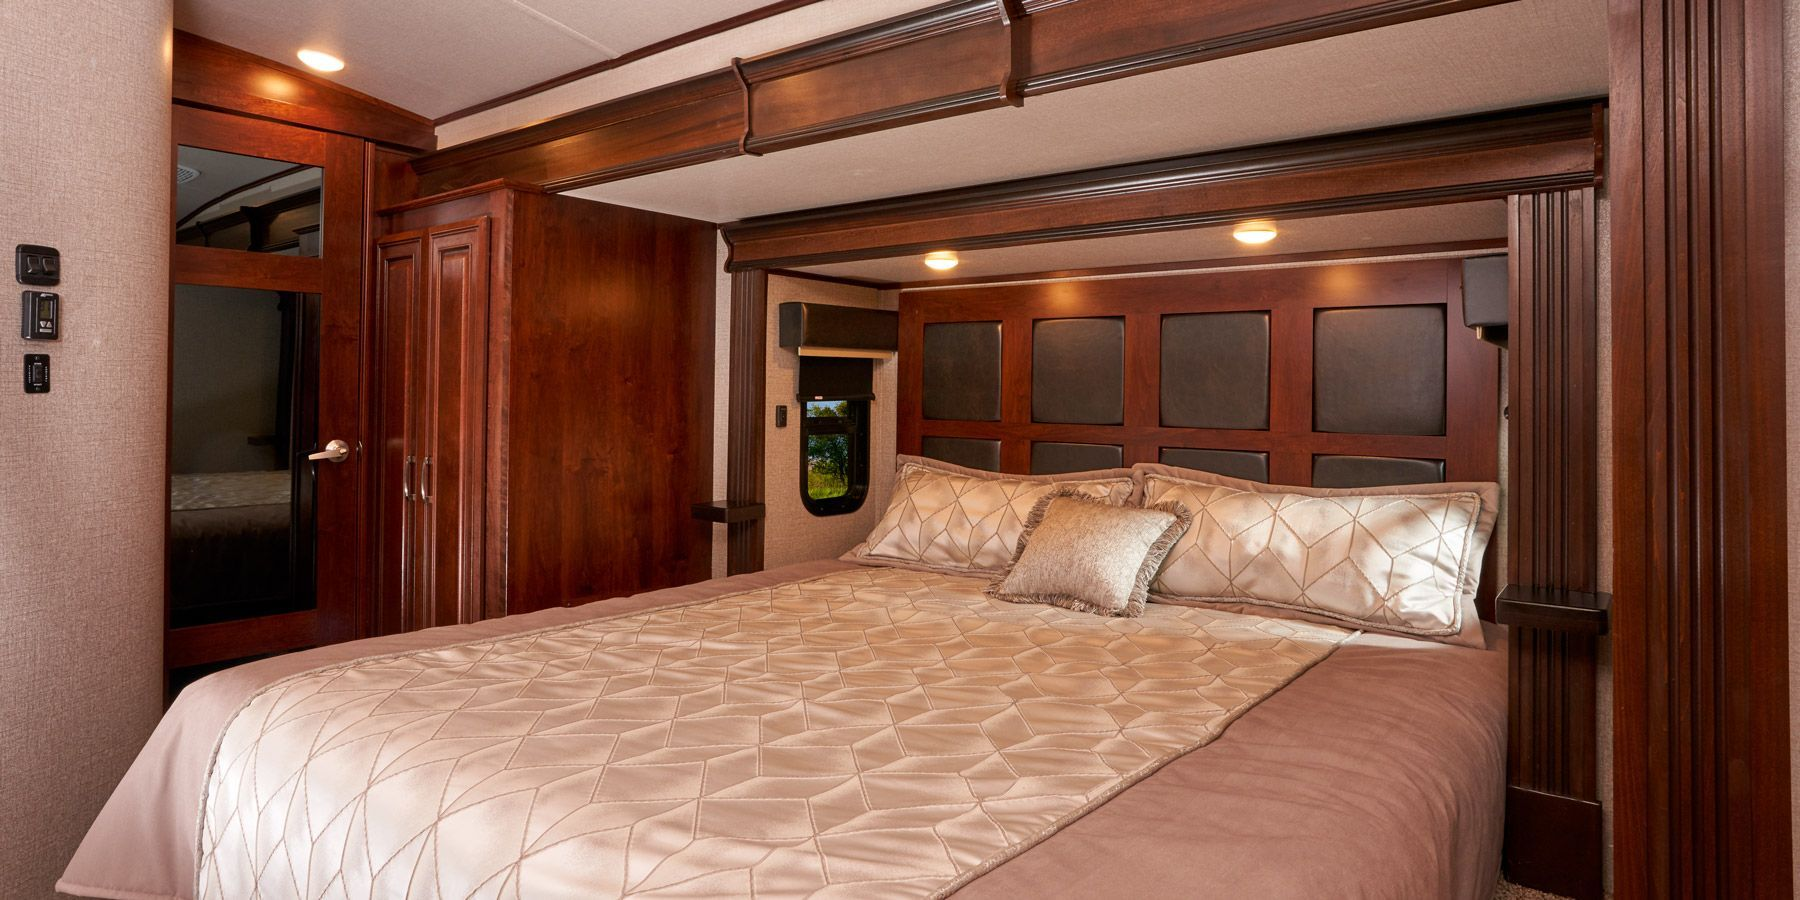 Each Pinnacle Bedroom Includes A Jayco Luxury Sleep System With A